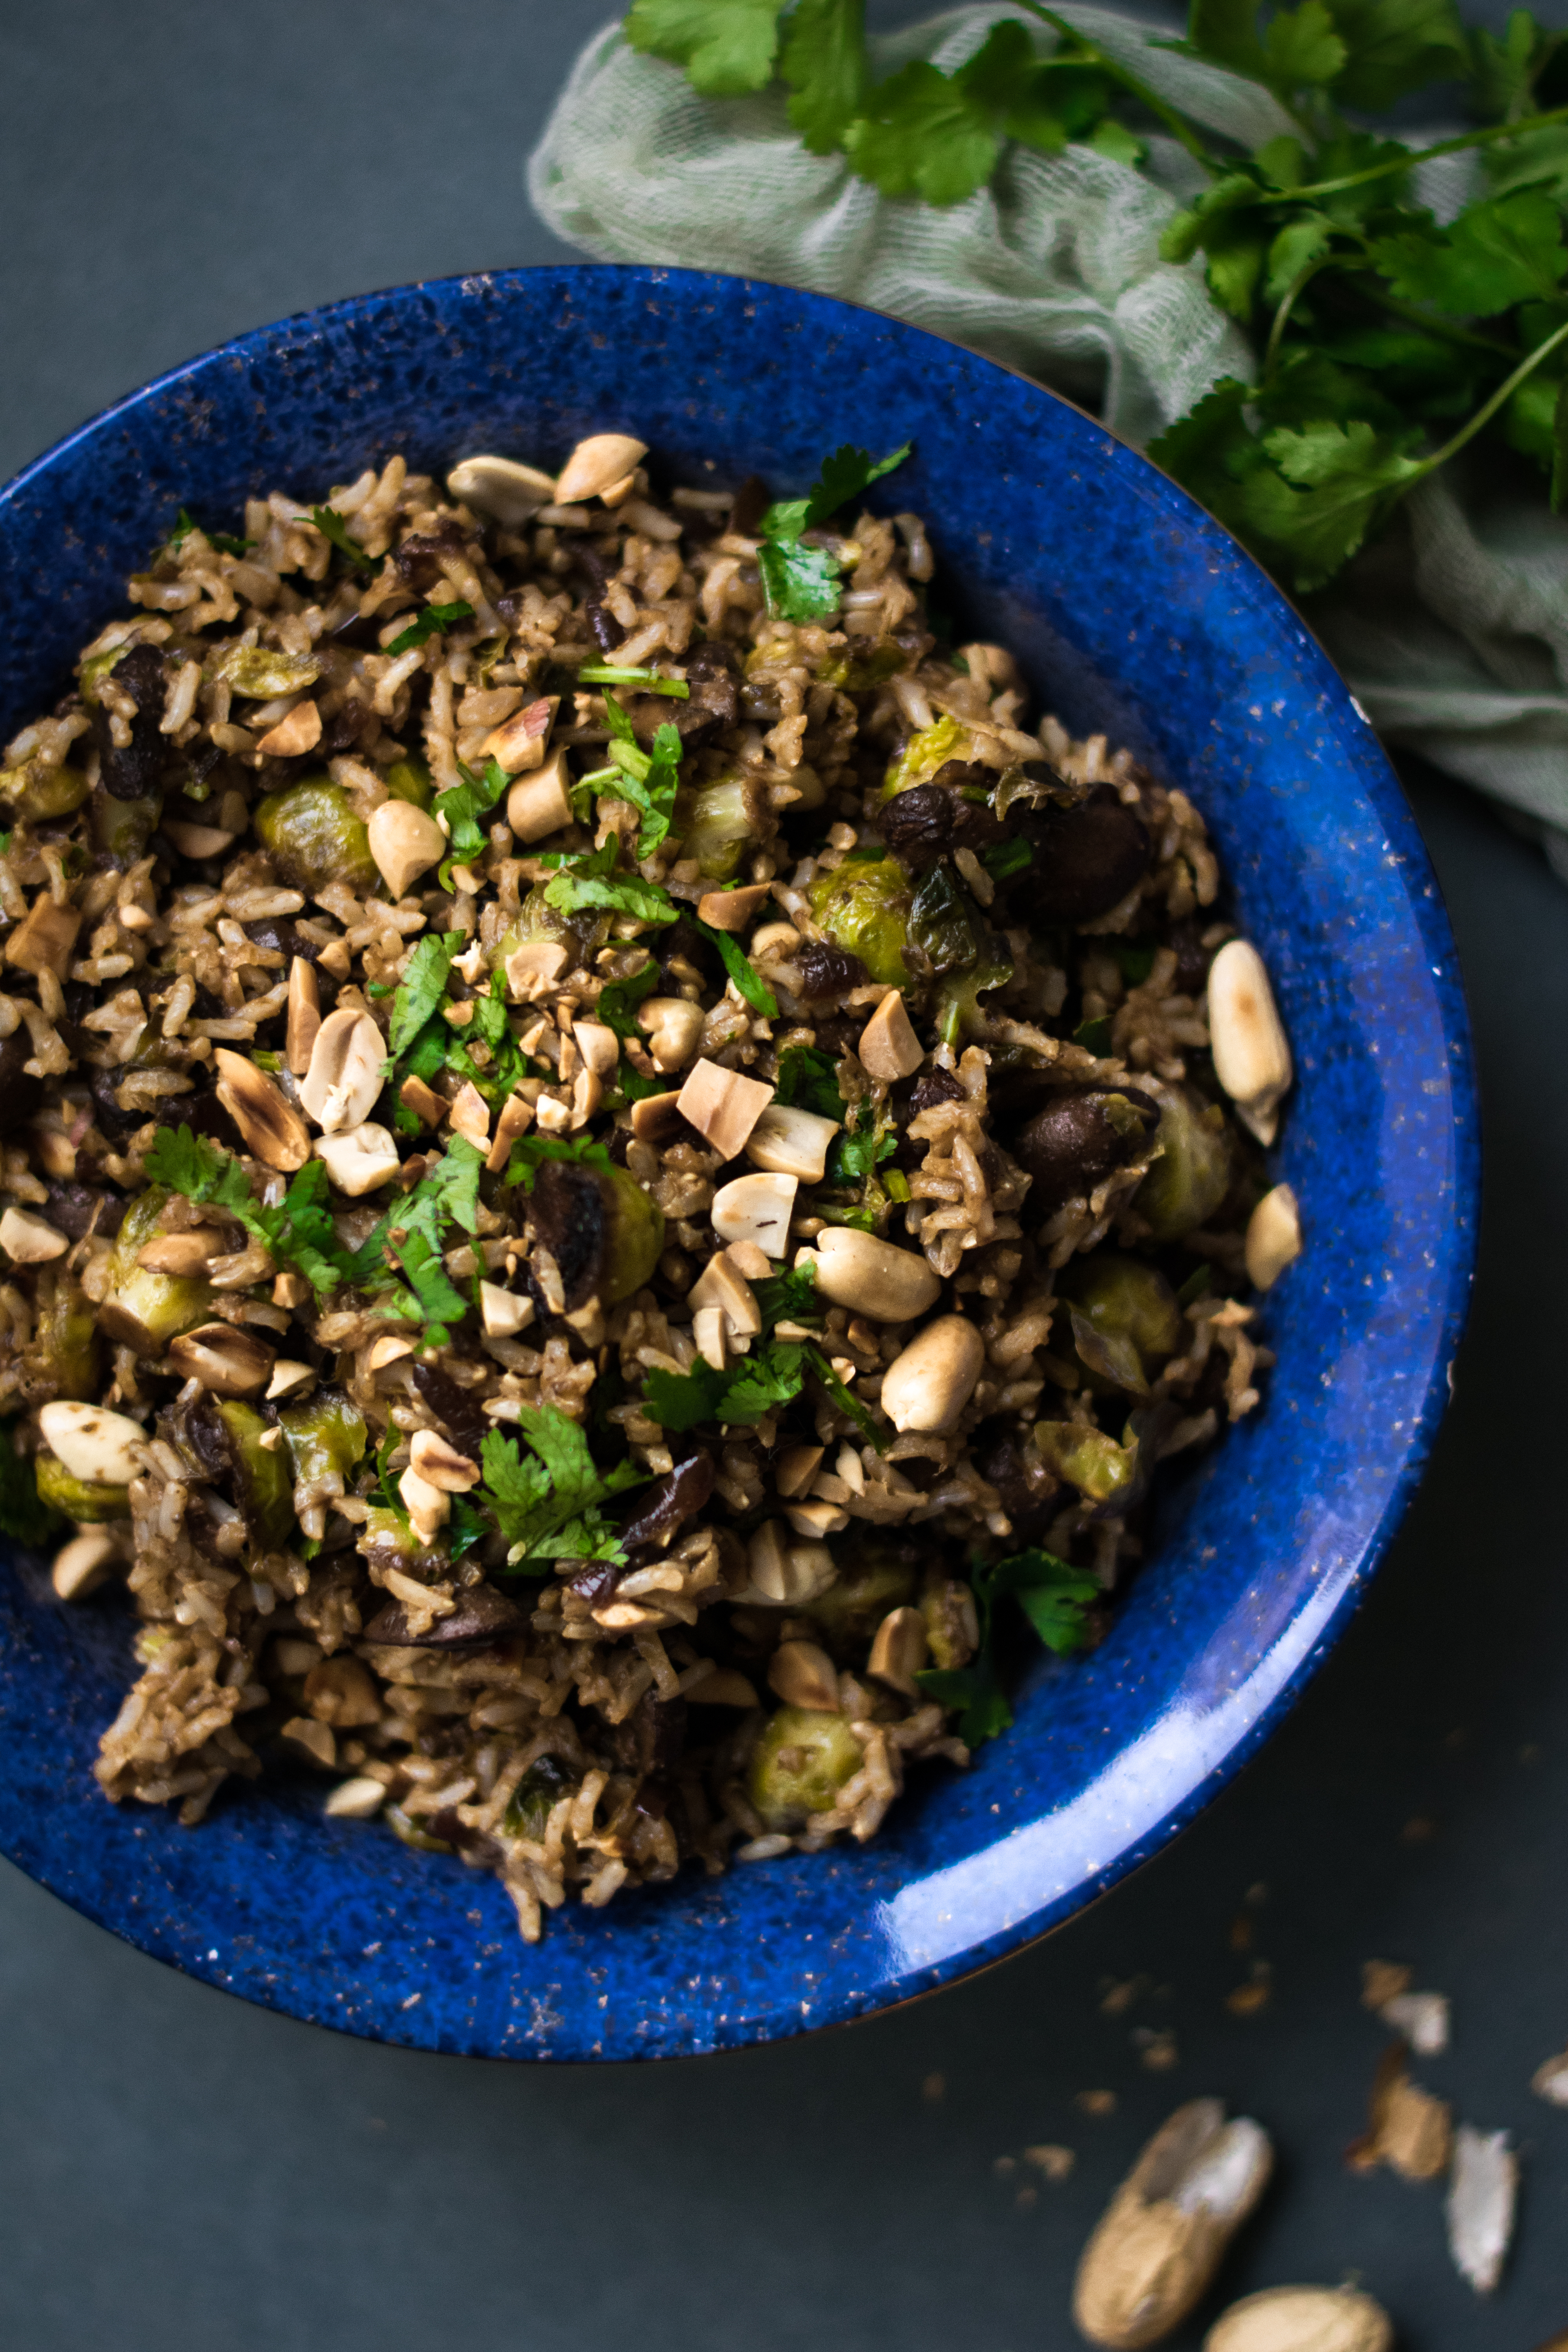 Spicy Brussels Sprout, Mushroom & Peanut Brown Rice Salad